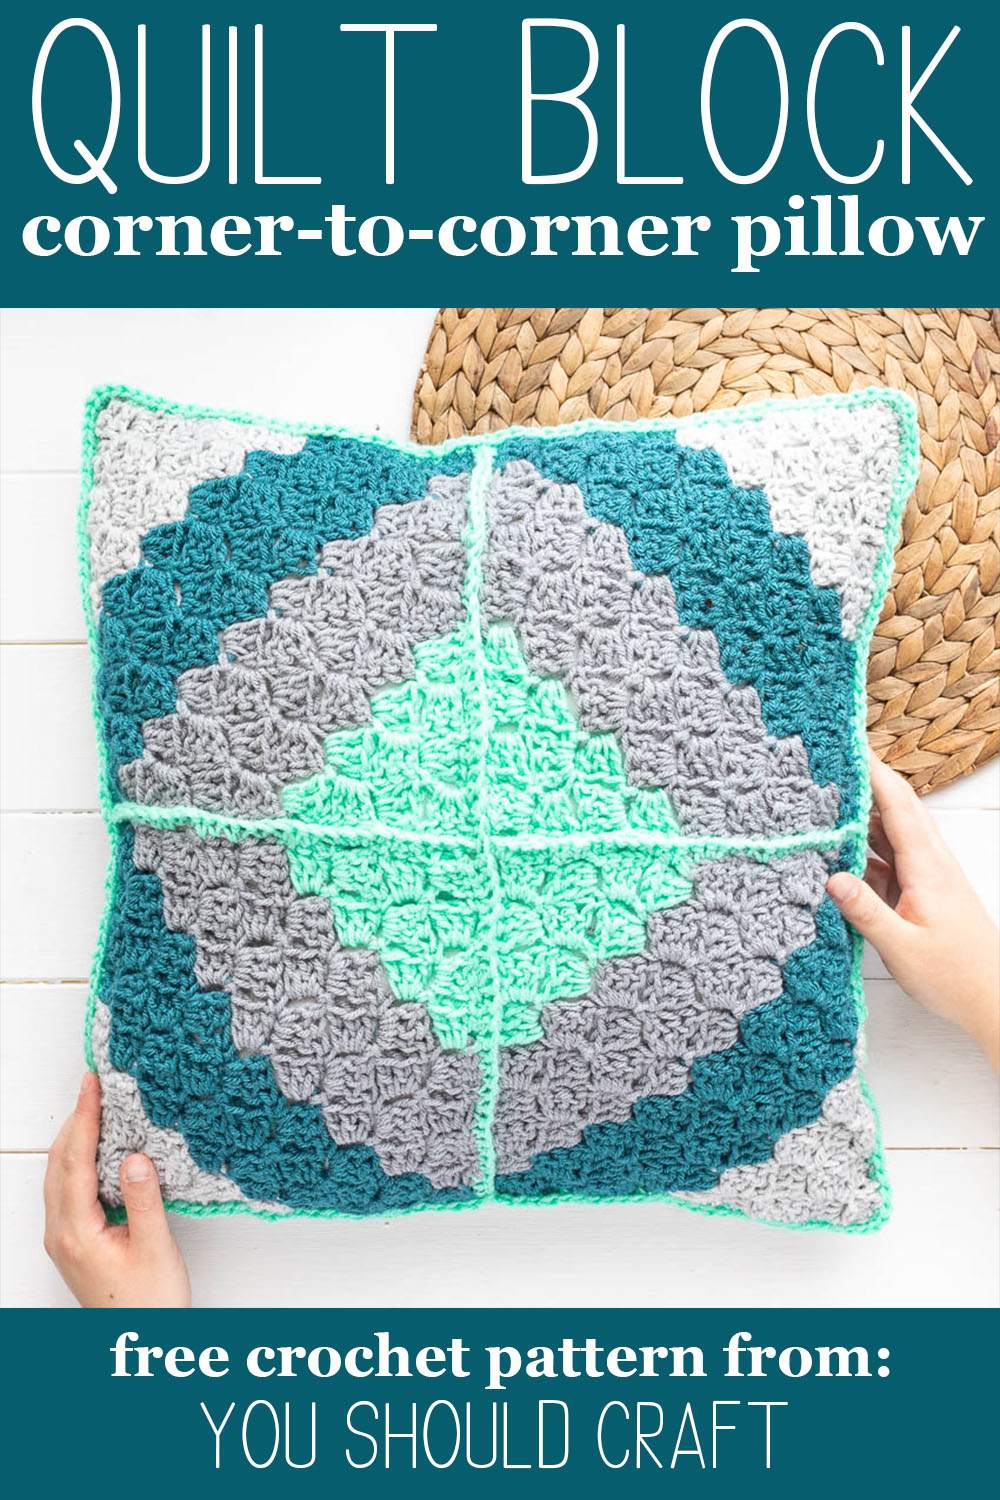 """two hands holding a teal and grey c2c crochet pillow with a diamond pattern and text """"quilt block corner-to-corner pillow -- free crochet pattern from you should craft"""""""